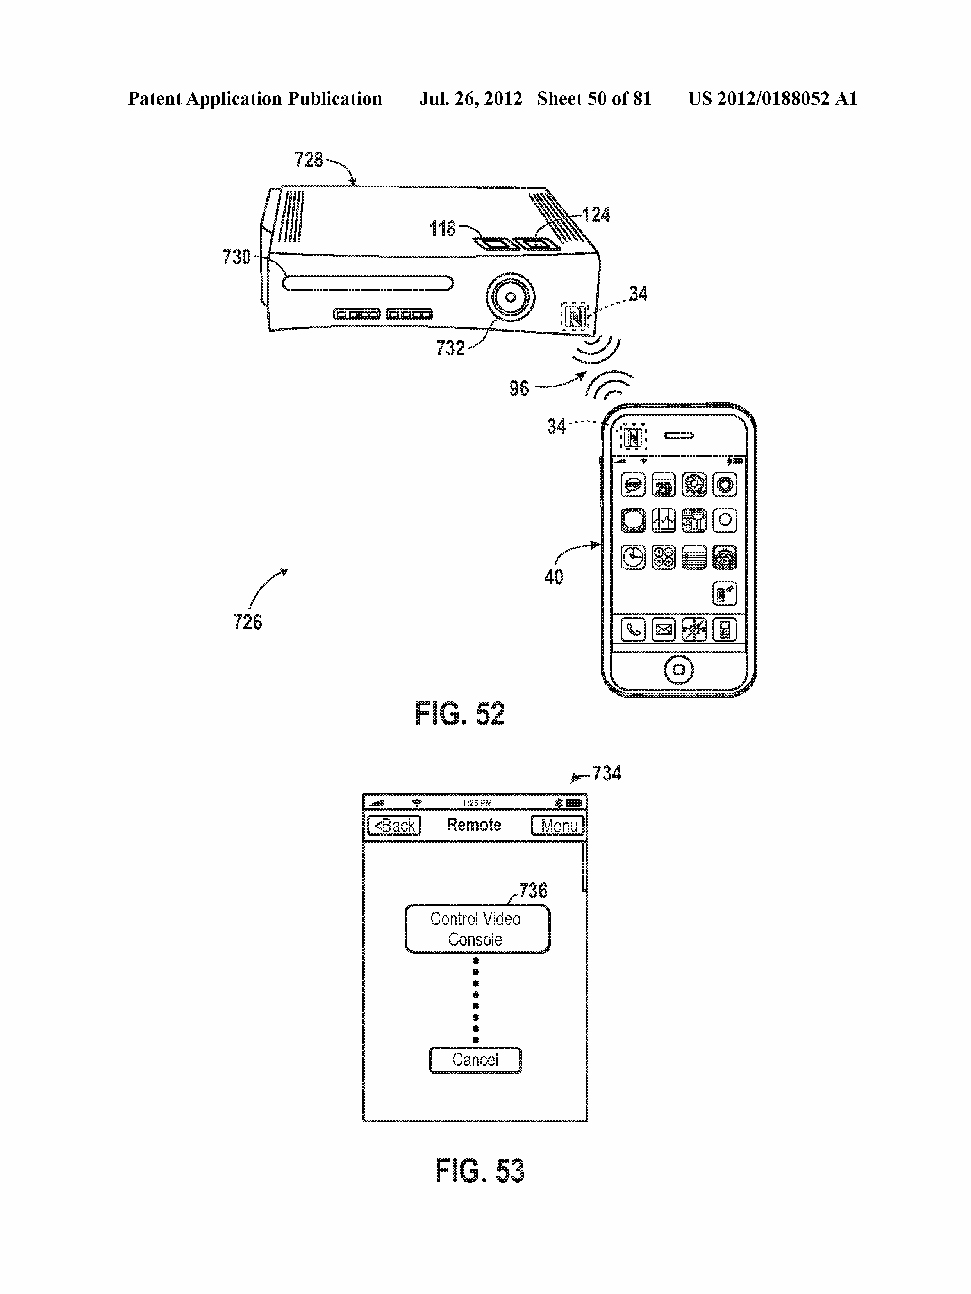 Apple files patent that would let you control consoles via the iPhone